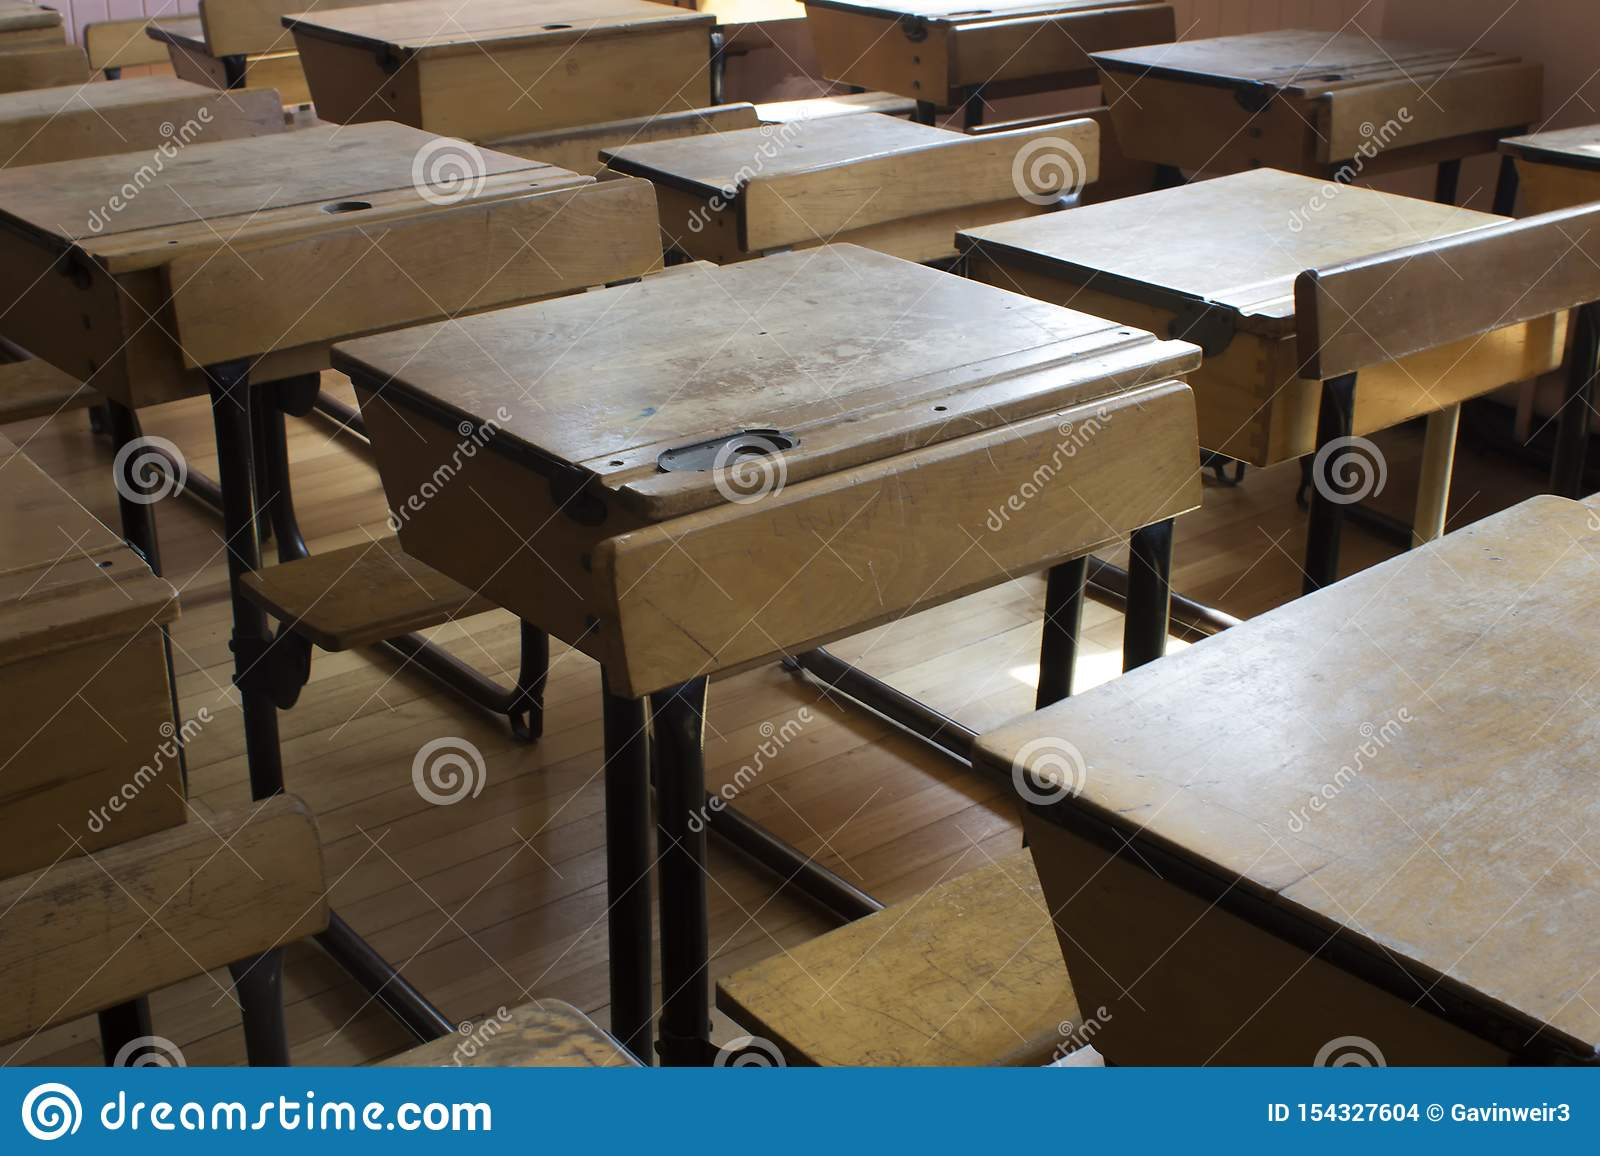 A old style school desk stock photo. Image of closeup ...